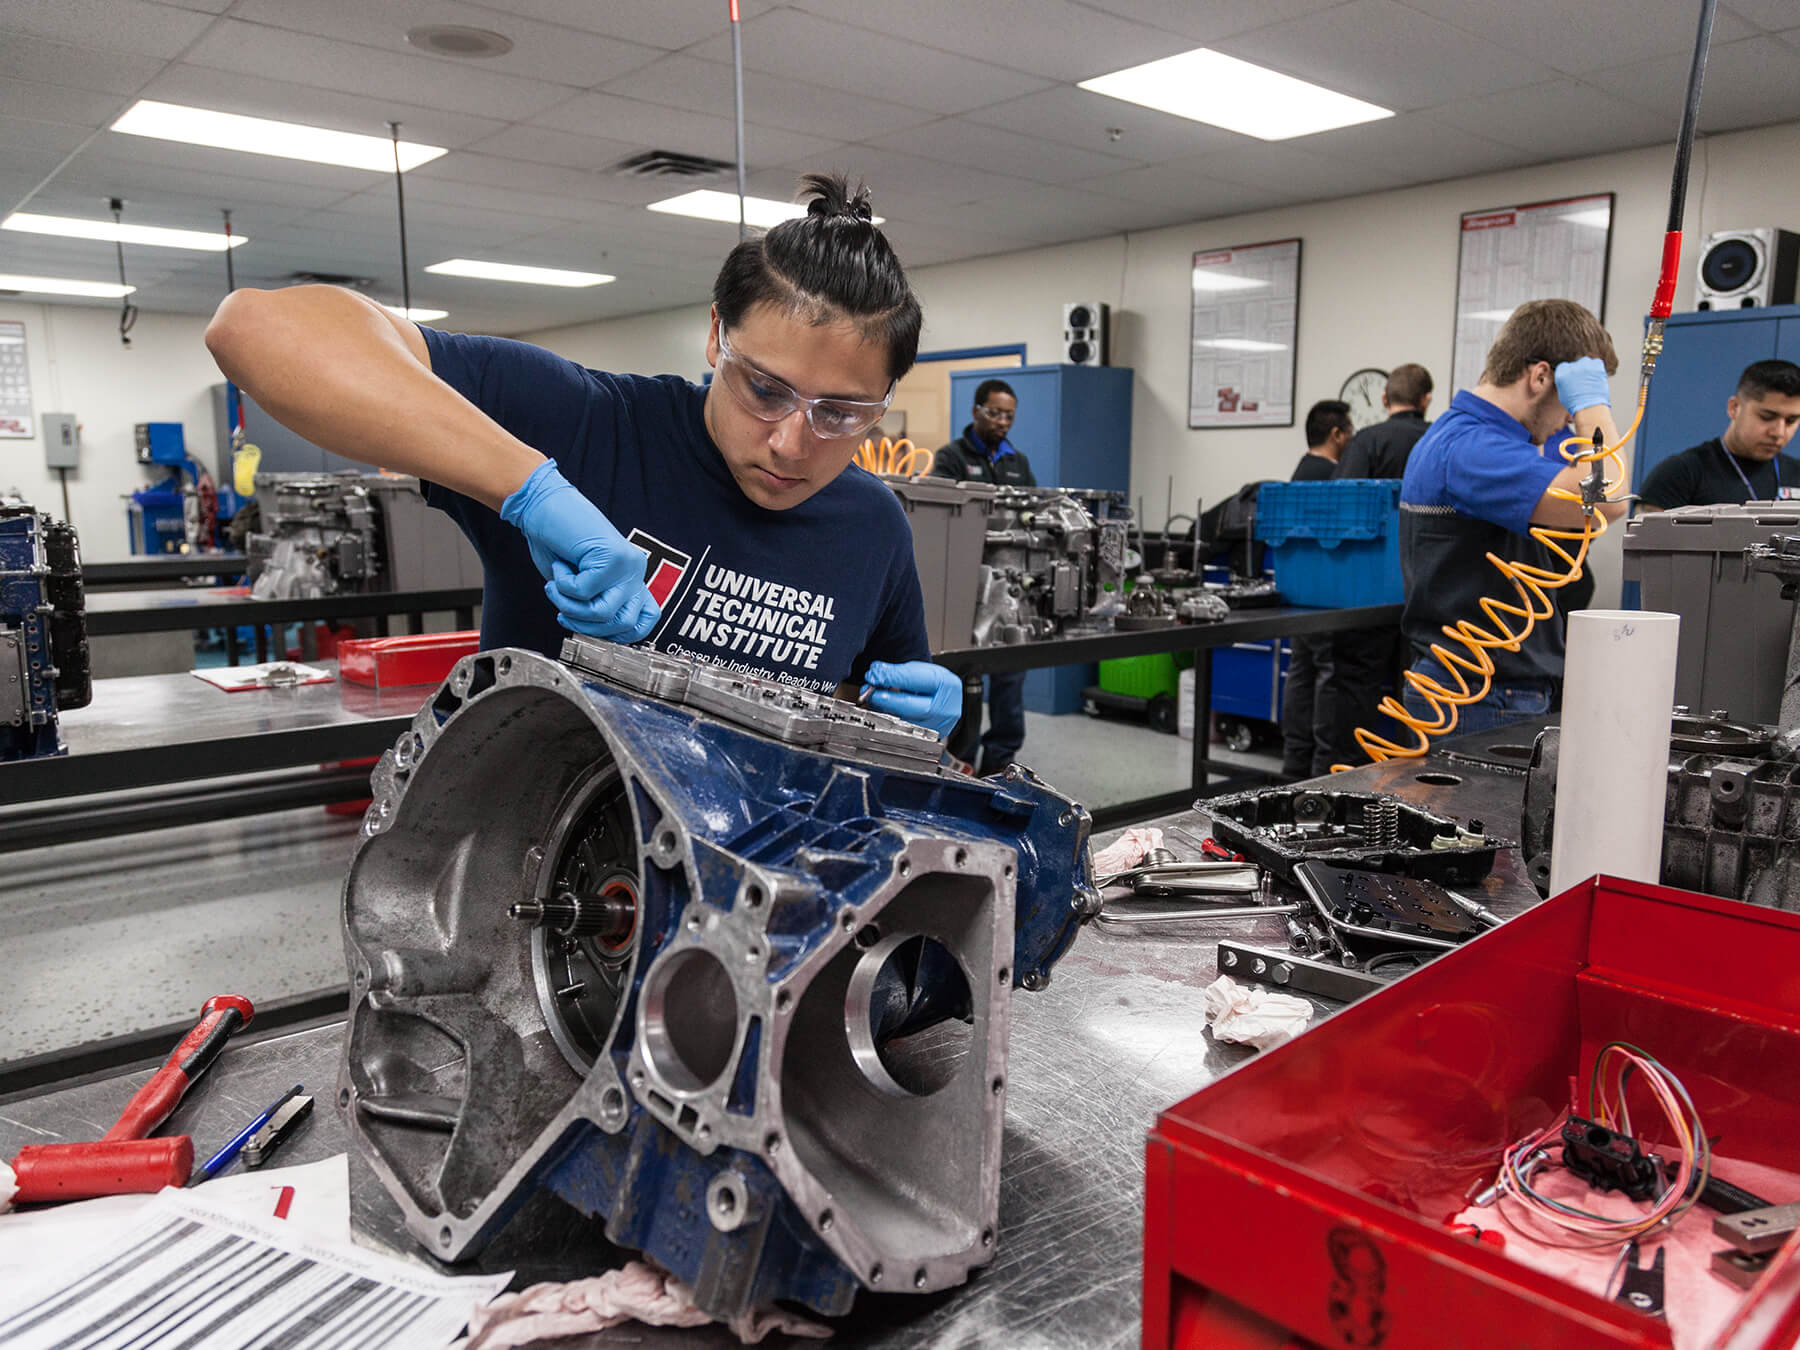 Student working on an engine in the auto classroom at the Exton campus